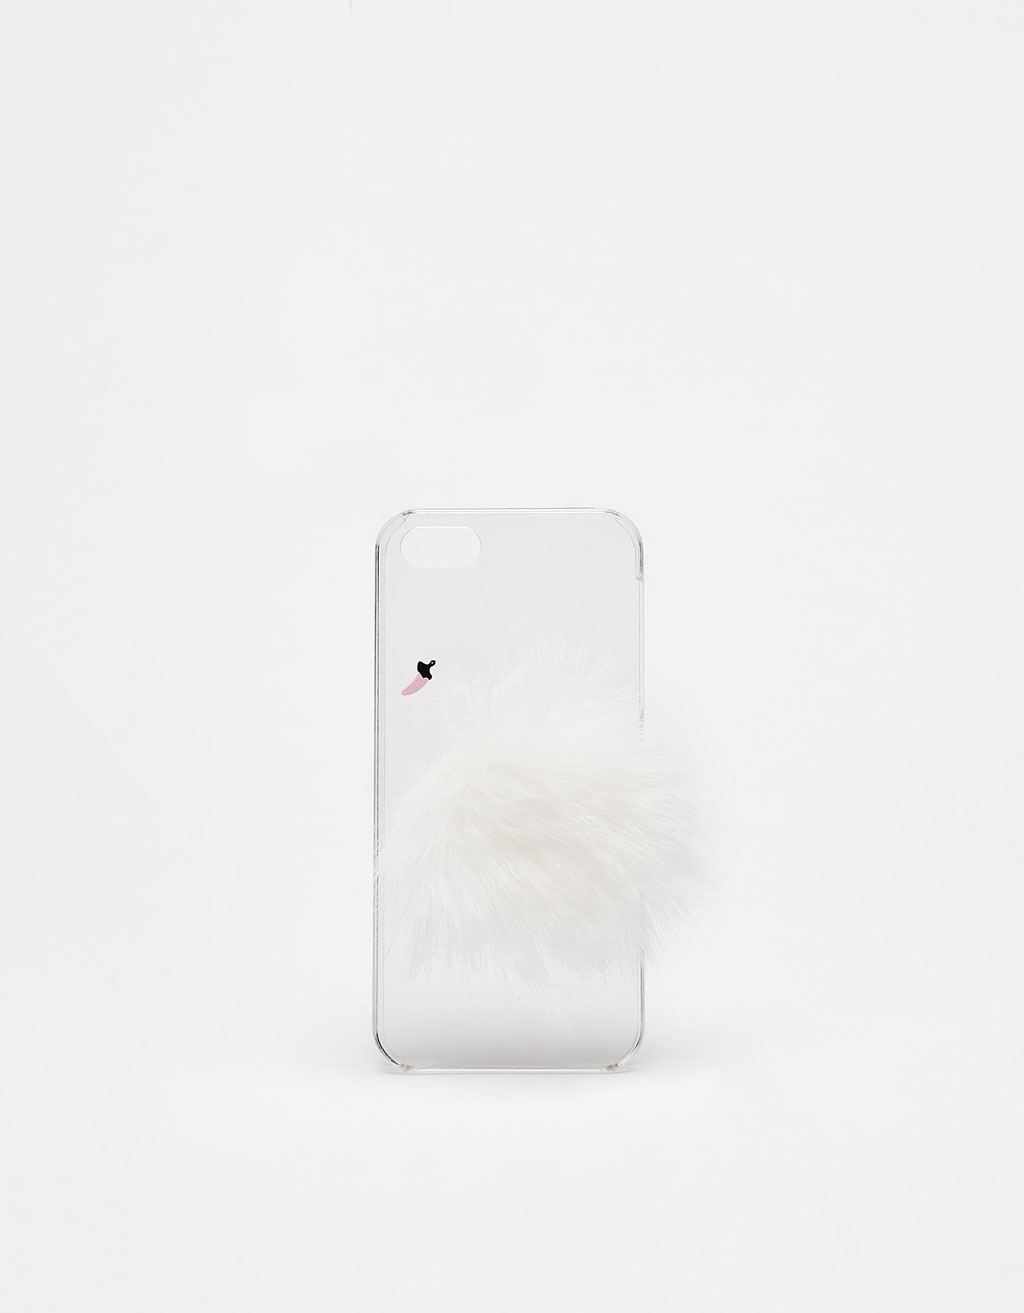 Swan-shaped iPhone 5/5s case with pompom